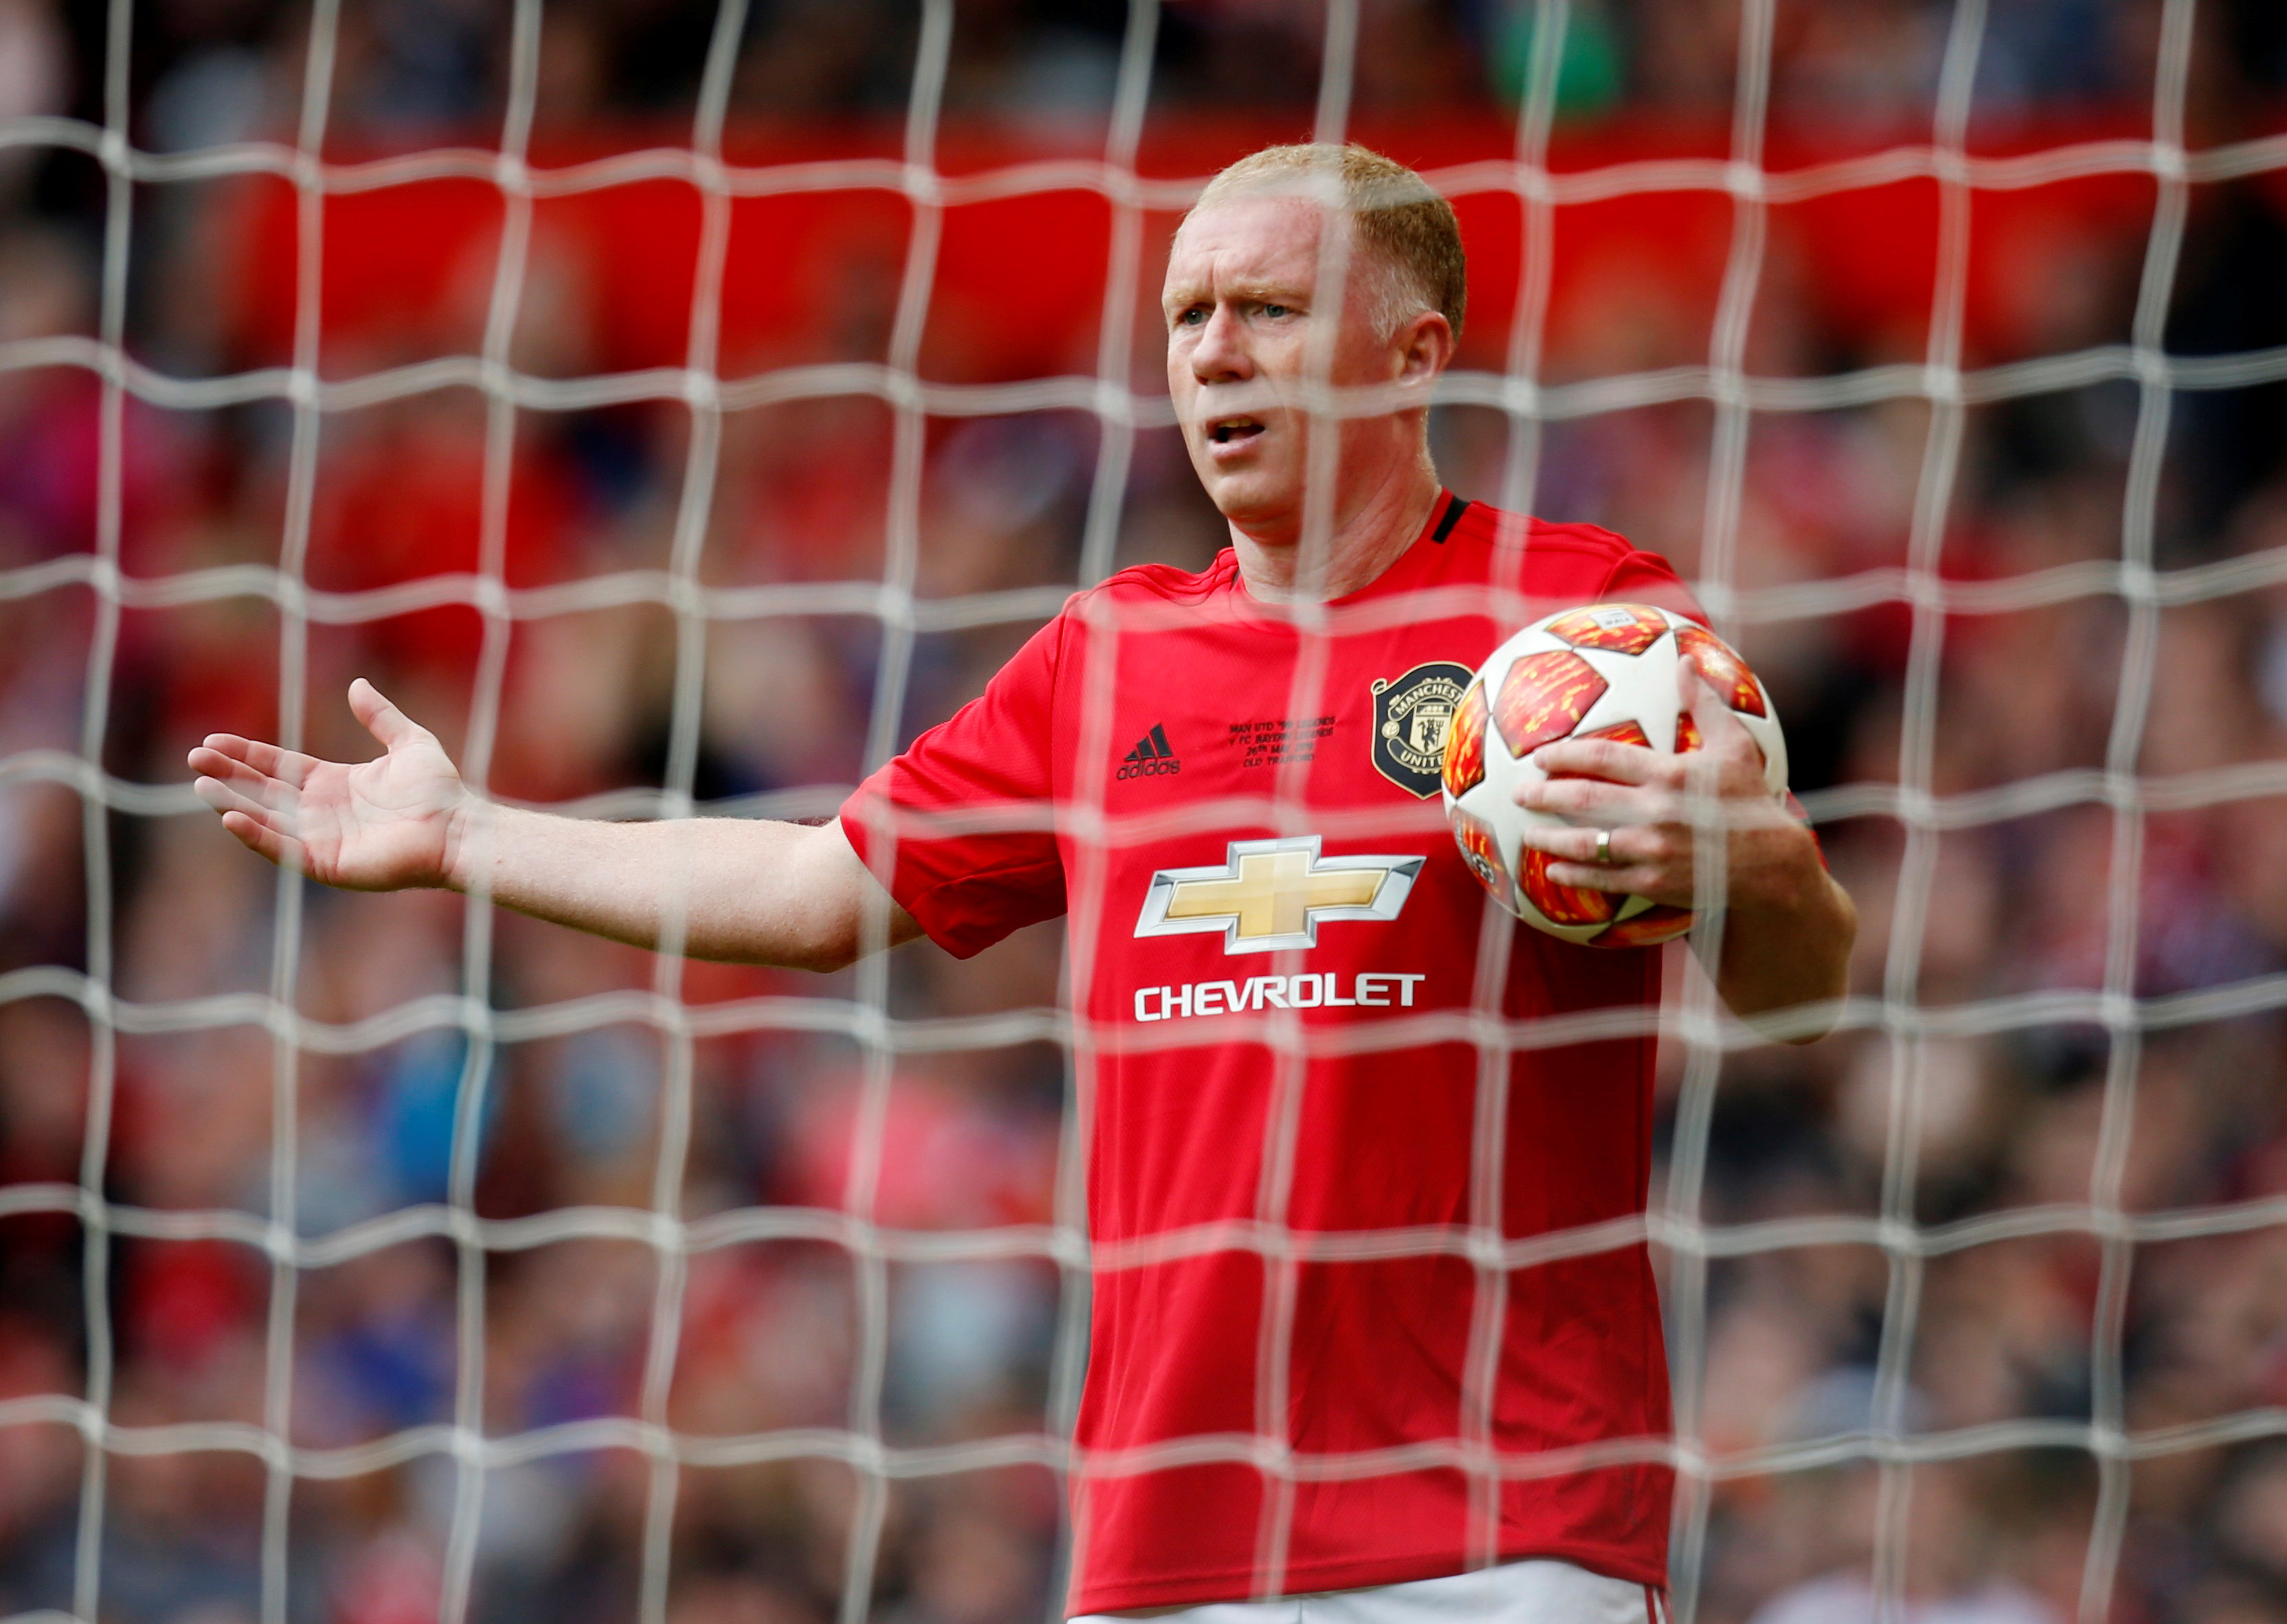 Scholes has a Christmas shopping list for United